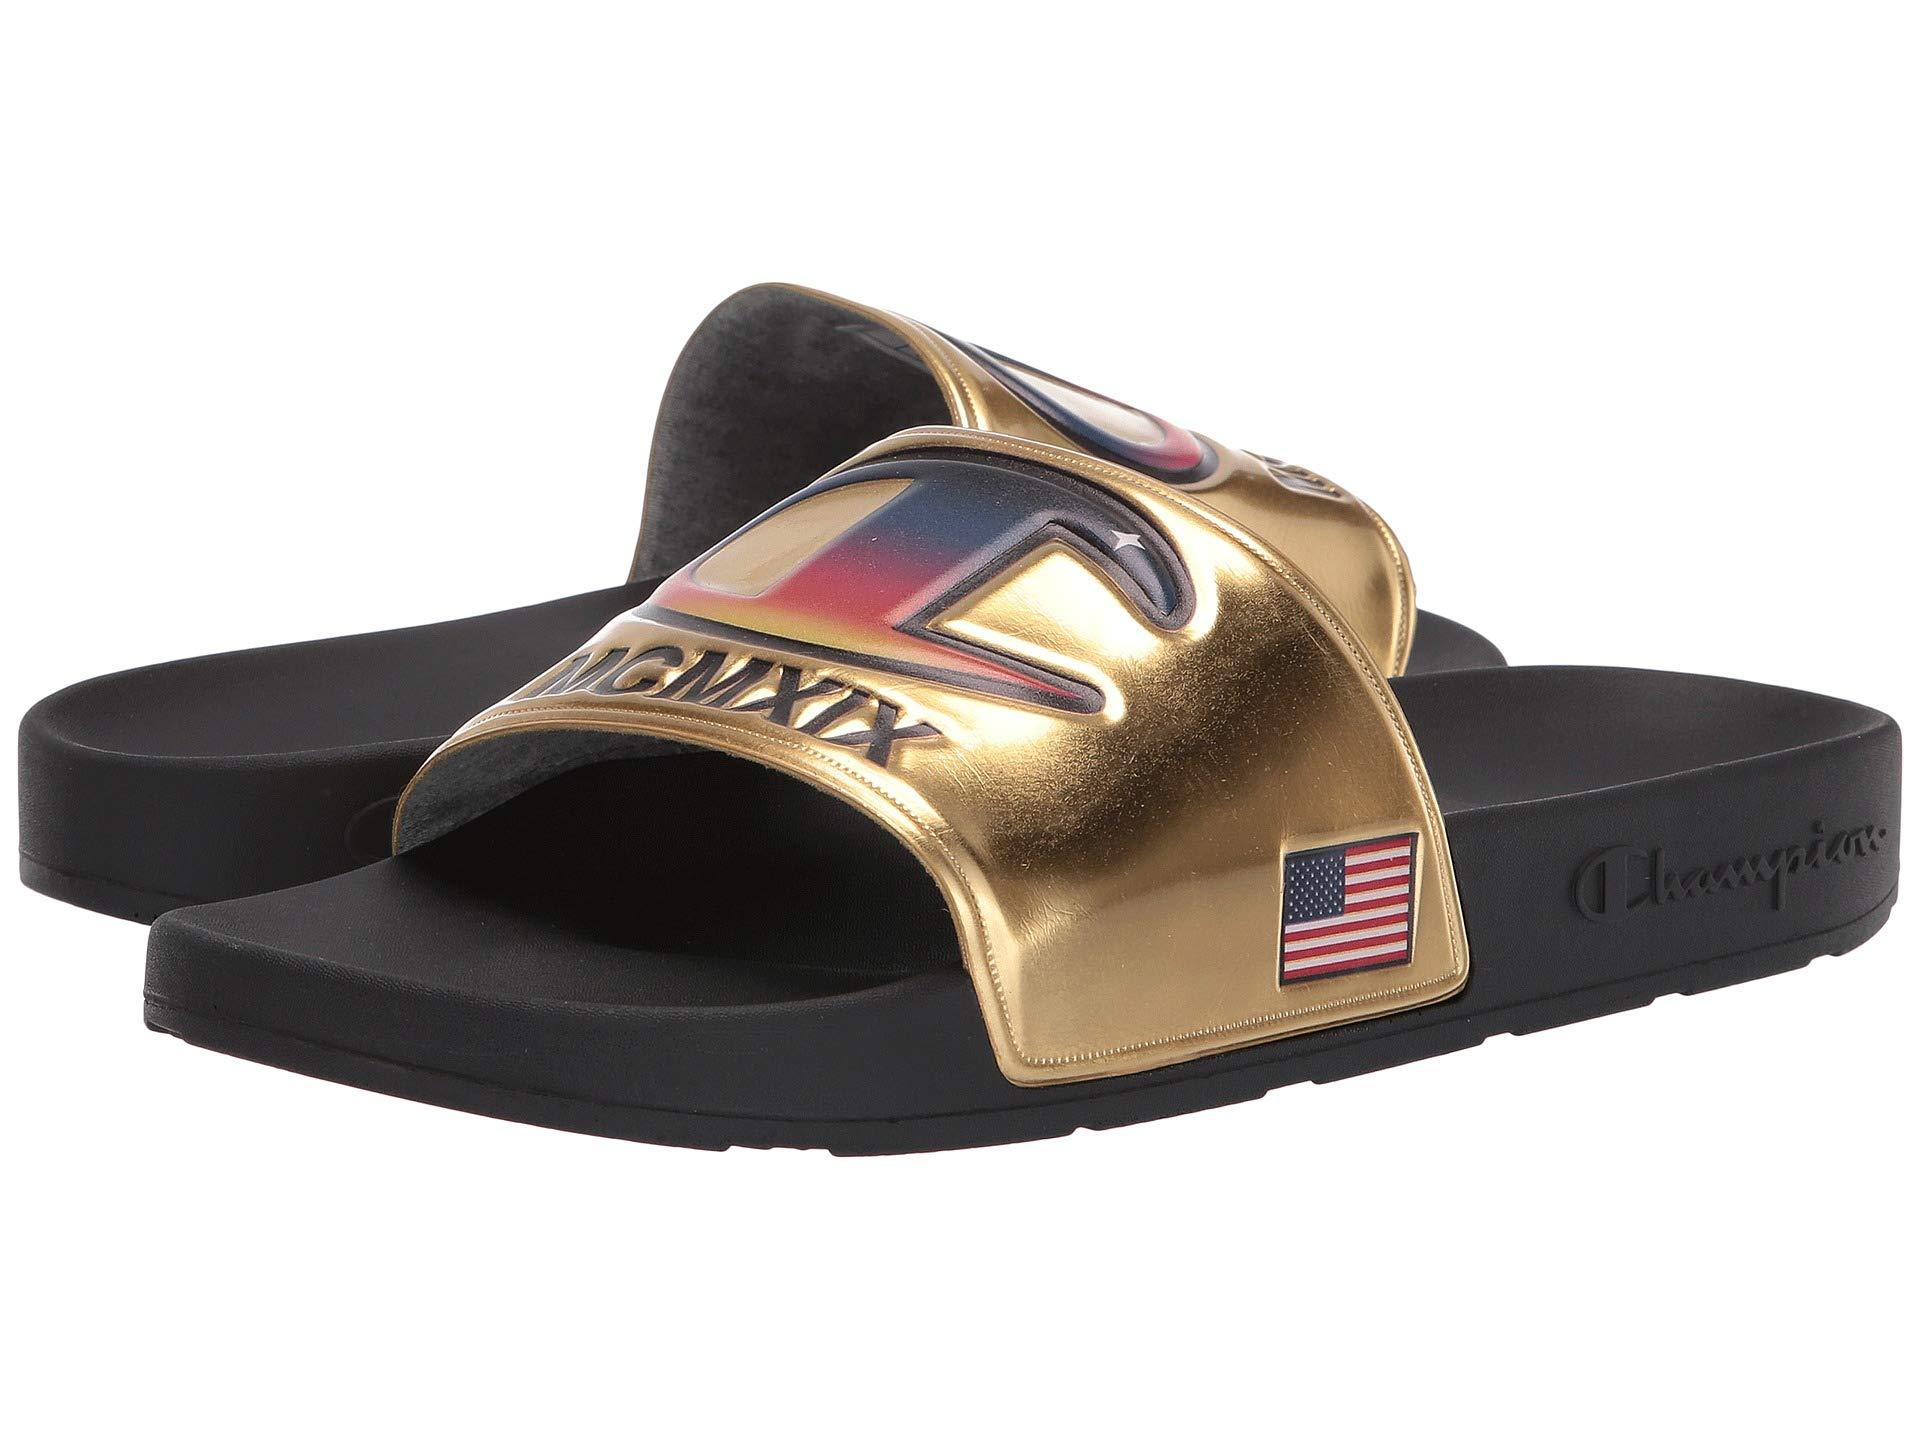 62604cd08e89 Lyst - Champion Ipo (navy navy) Men s Slide Shoes in Metallic for ...